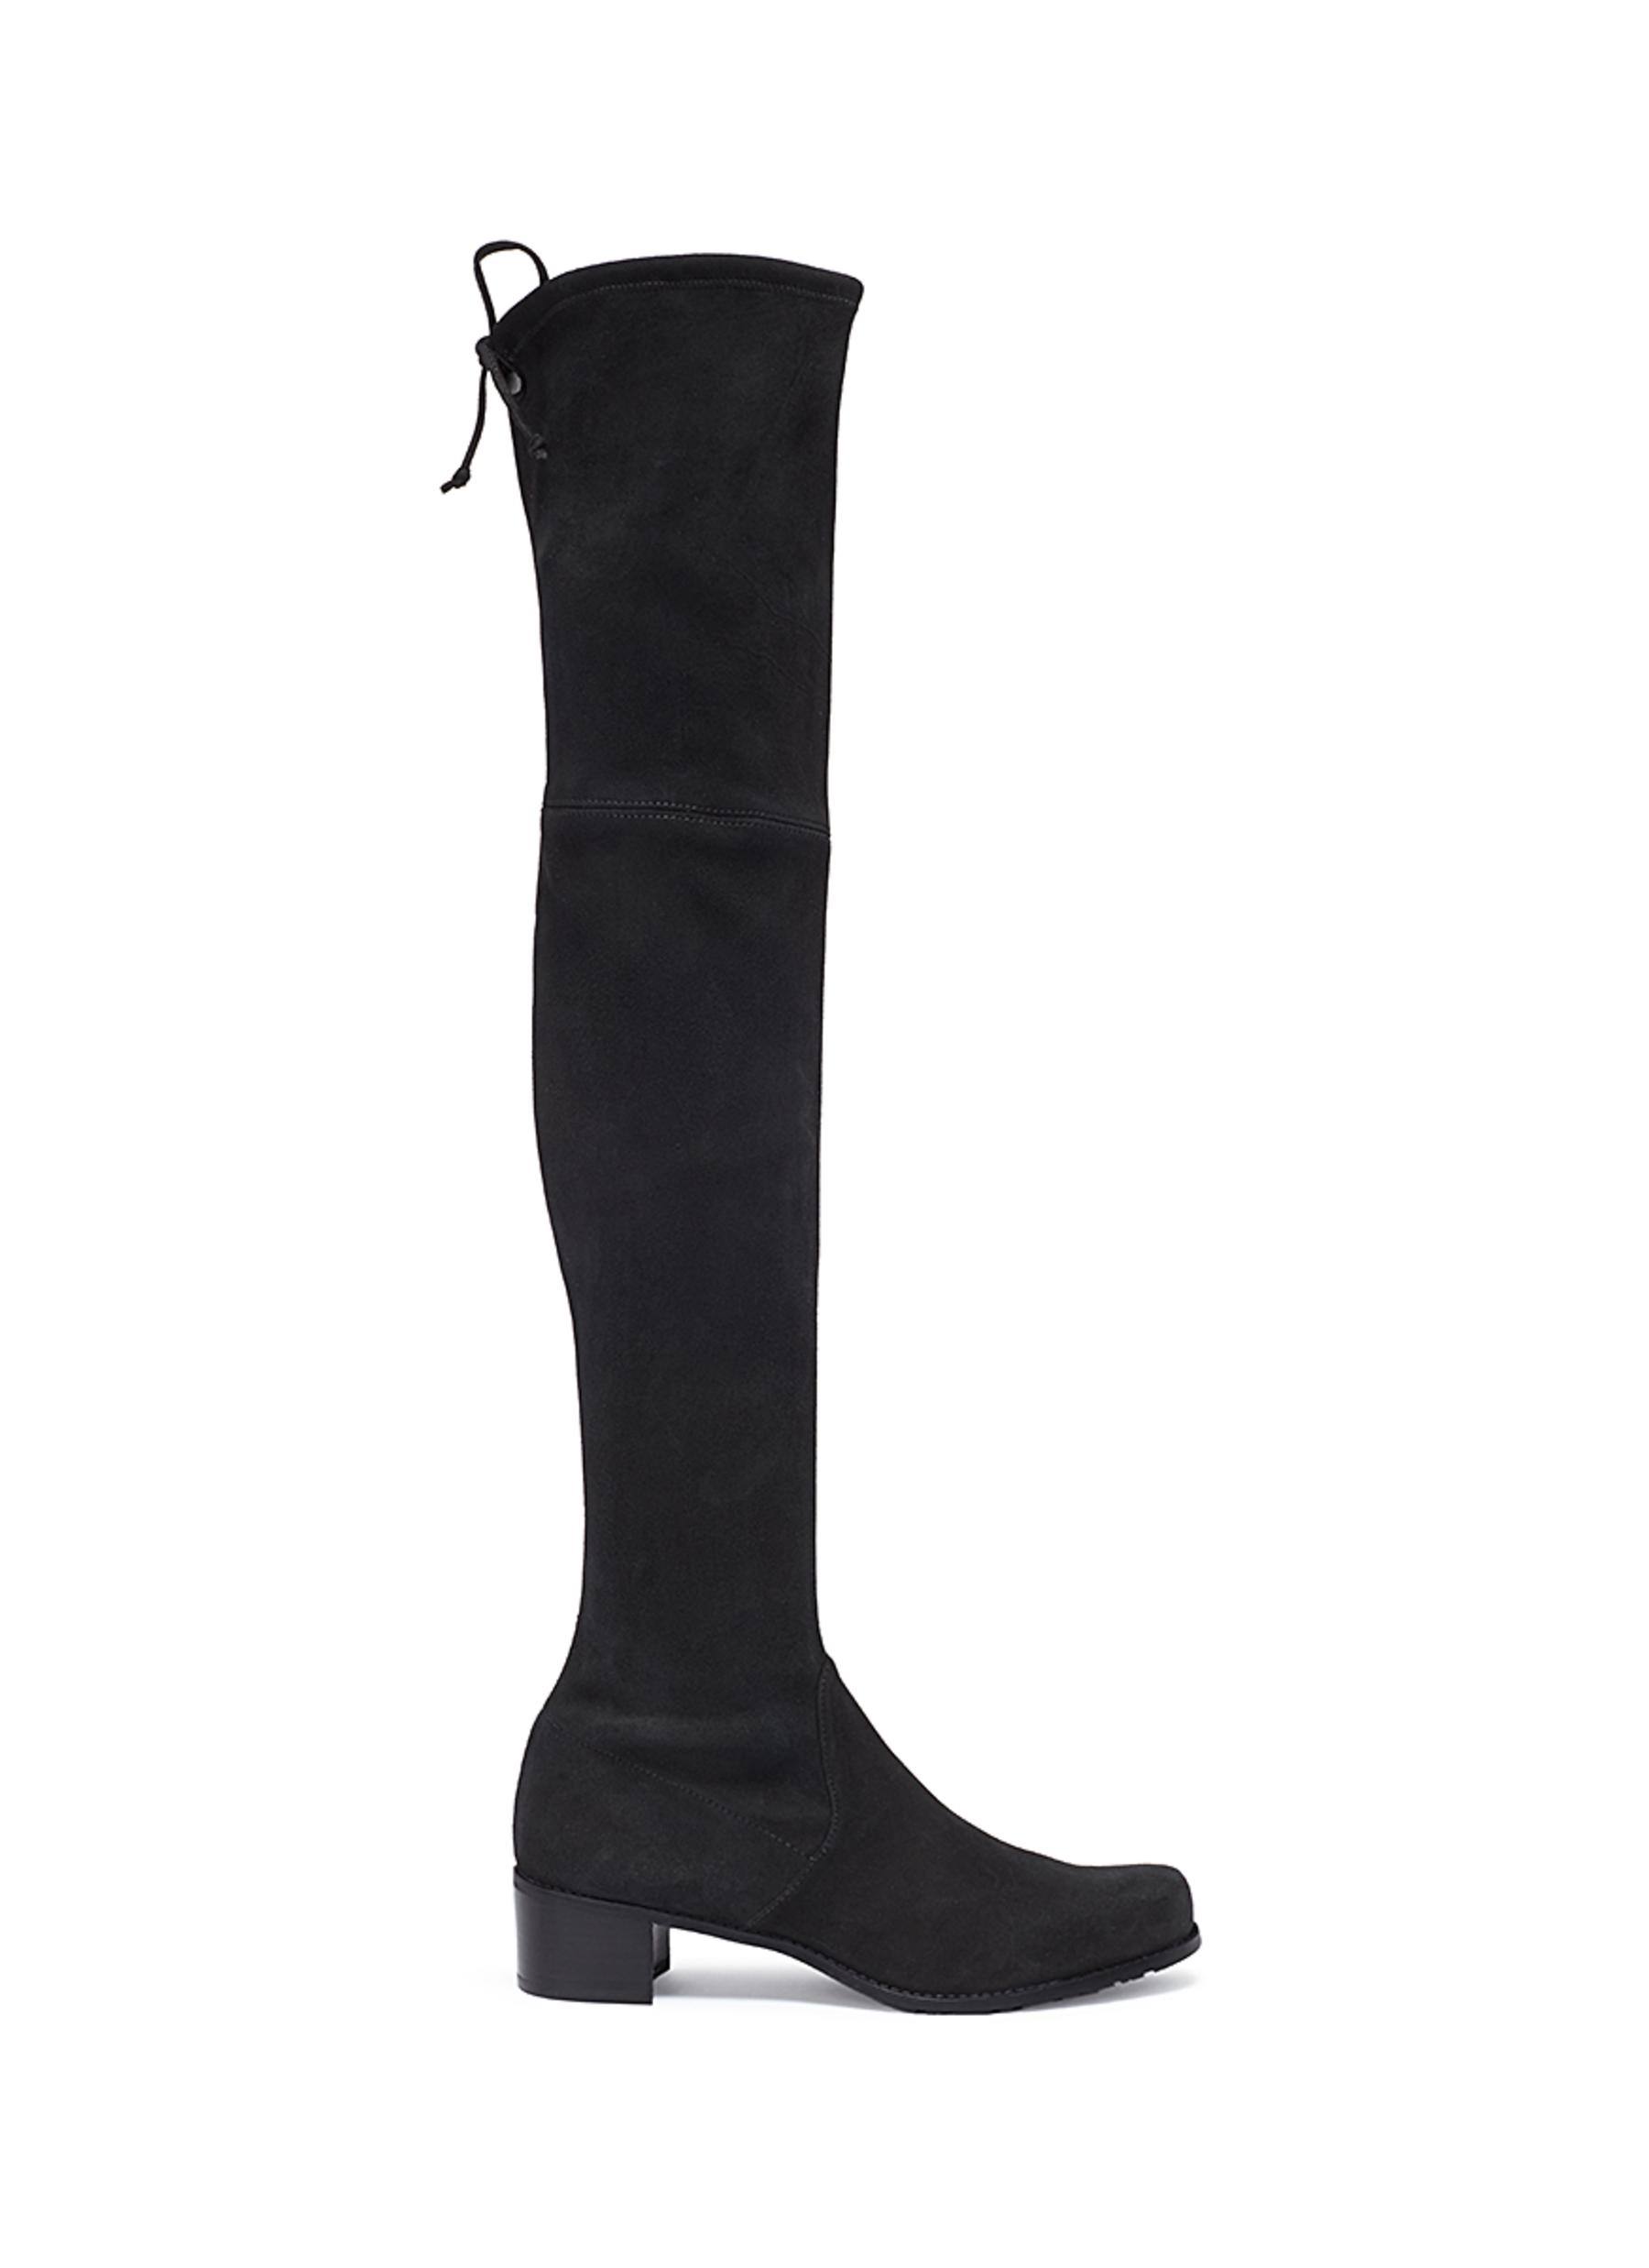 Midland suede thigh high boots by Stuart Weitzman